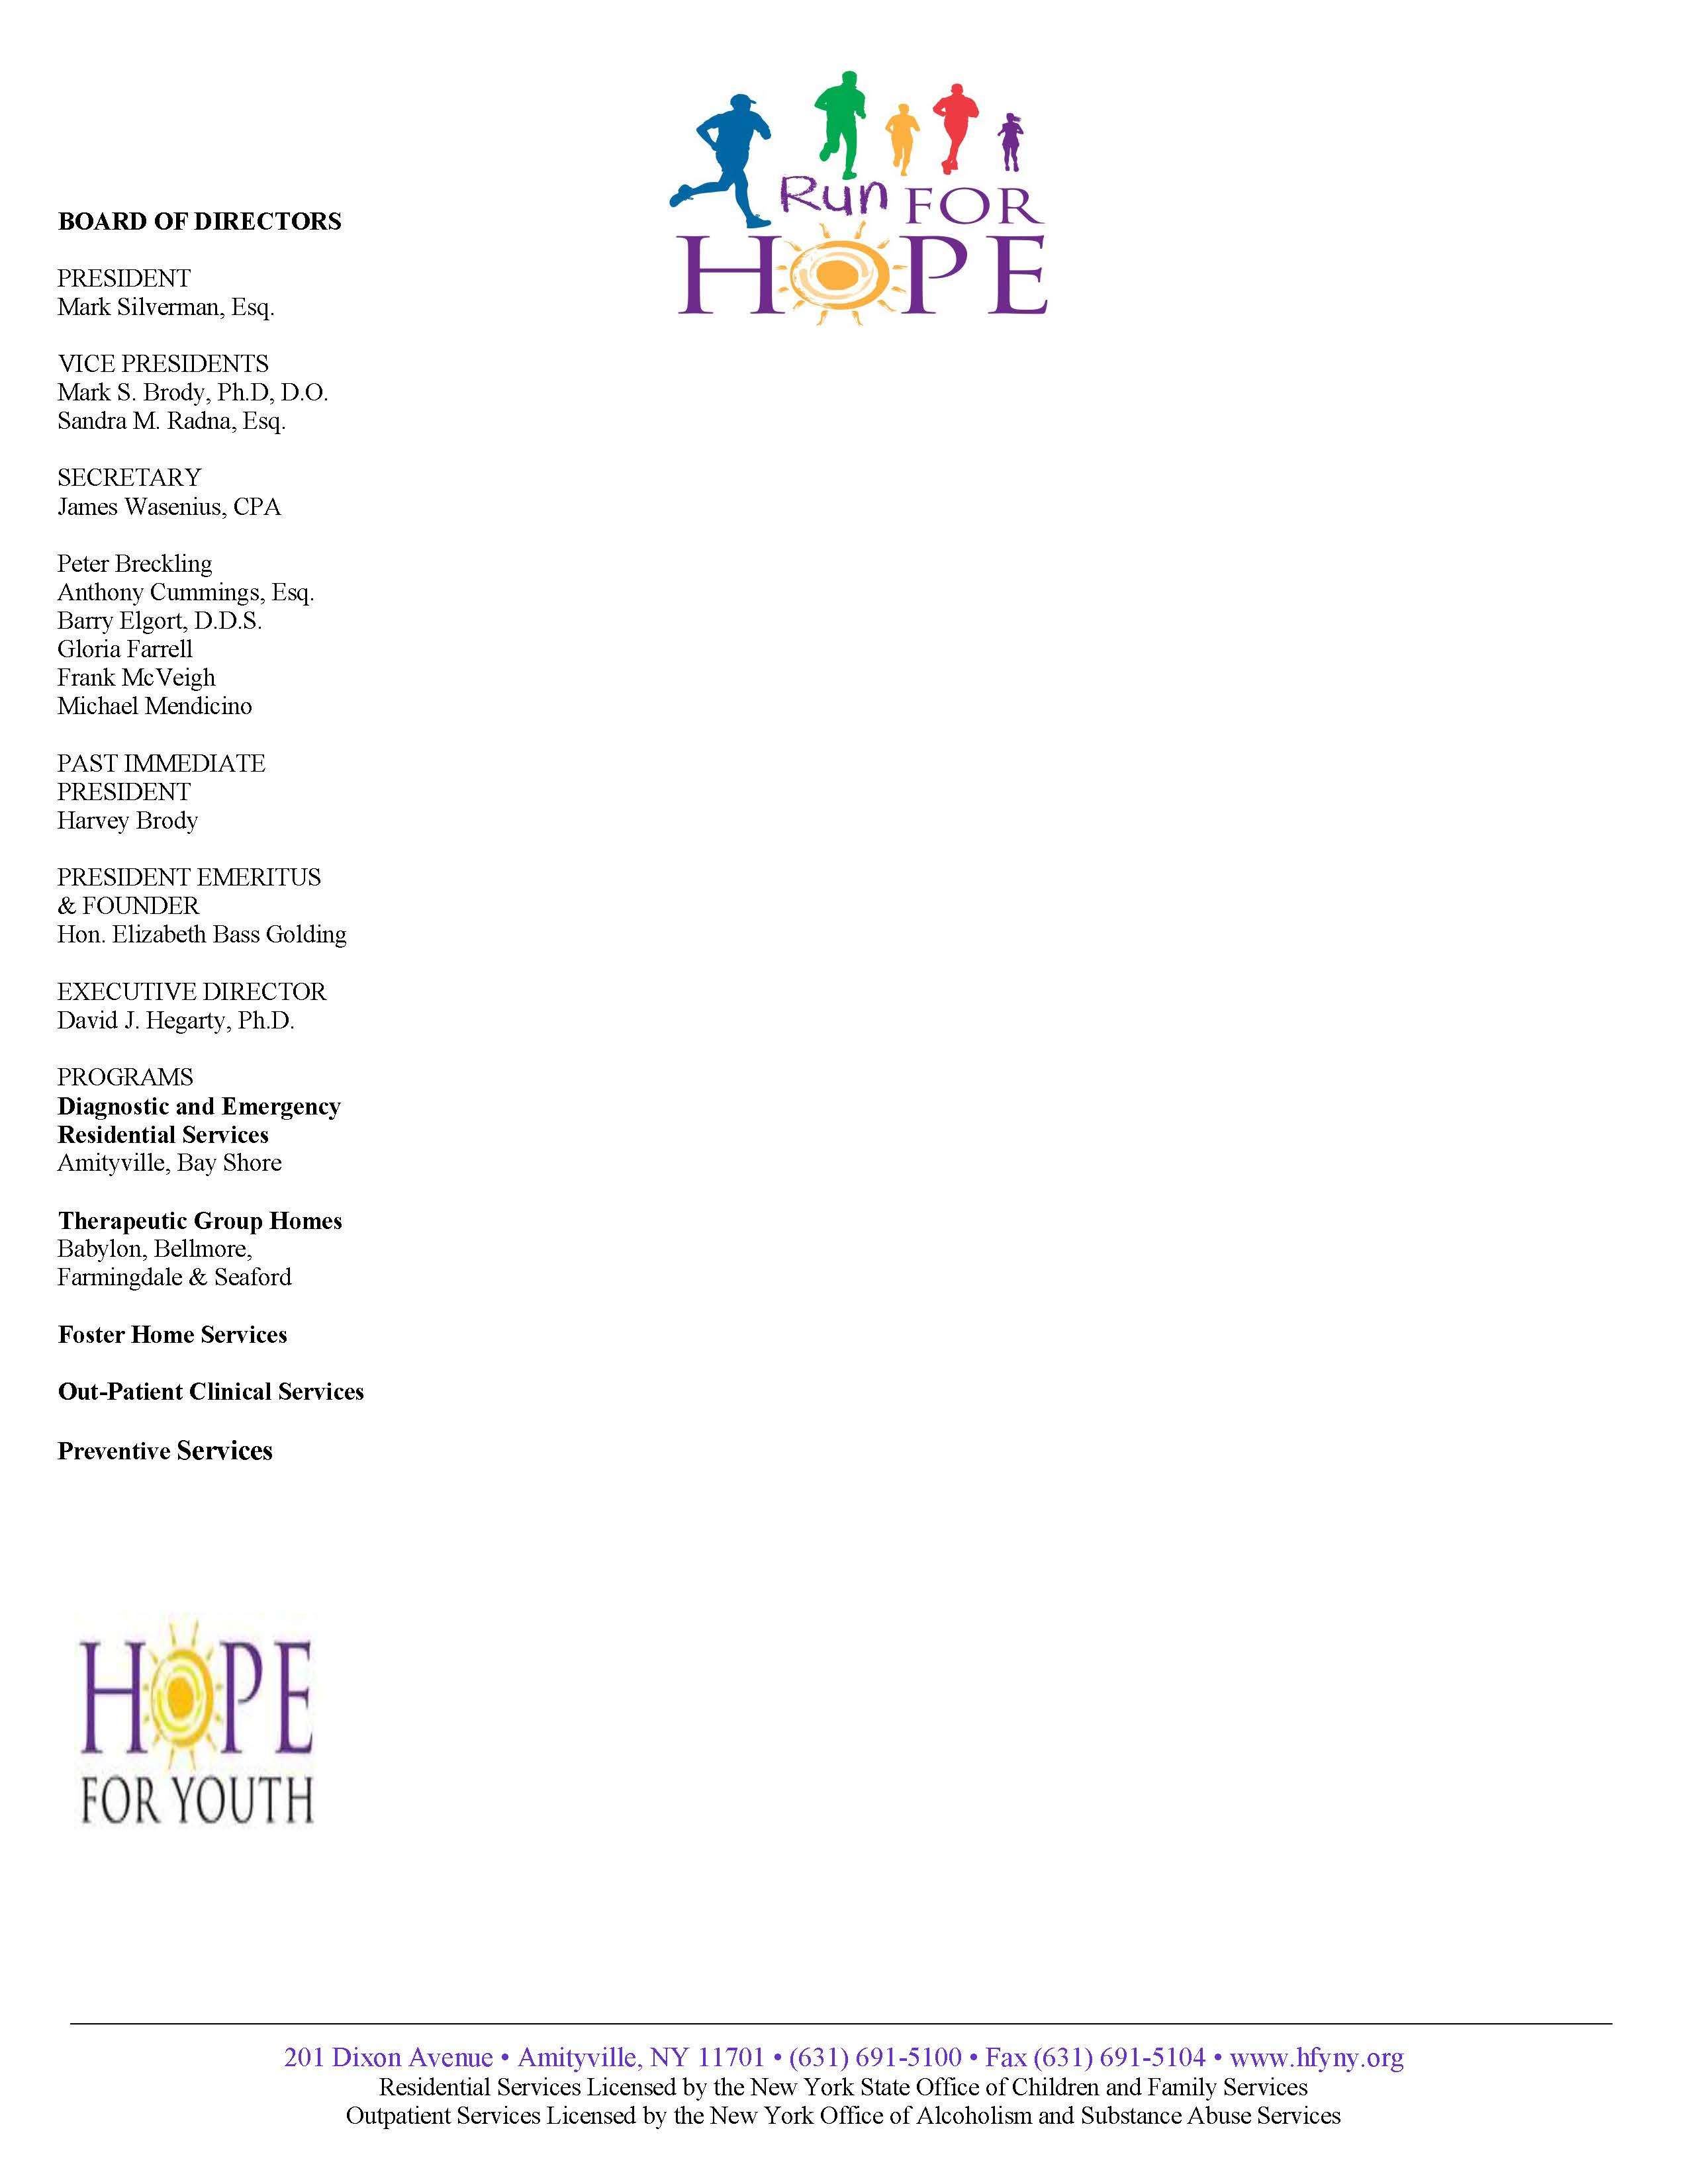 Hope for Youth Letterhead